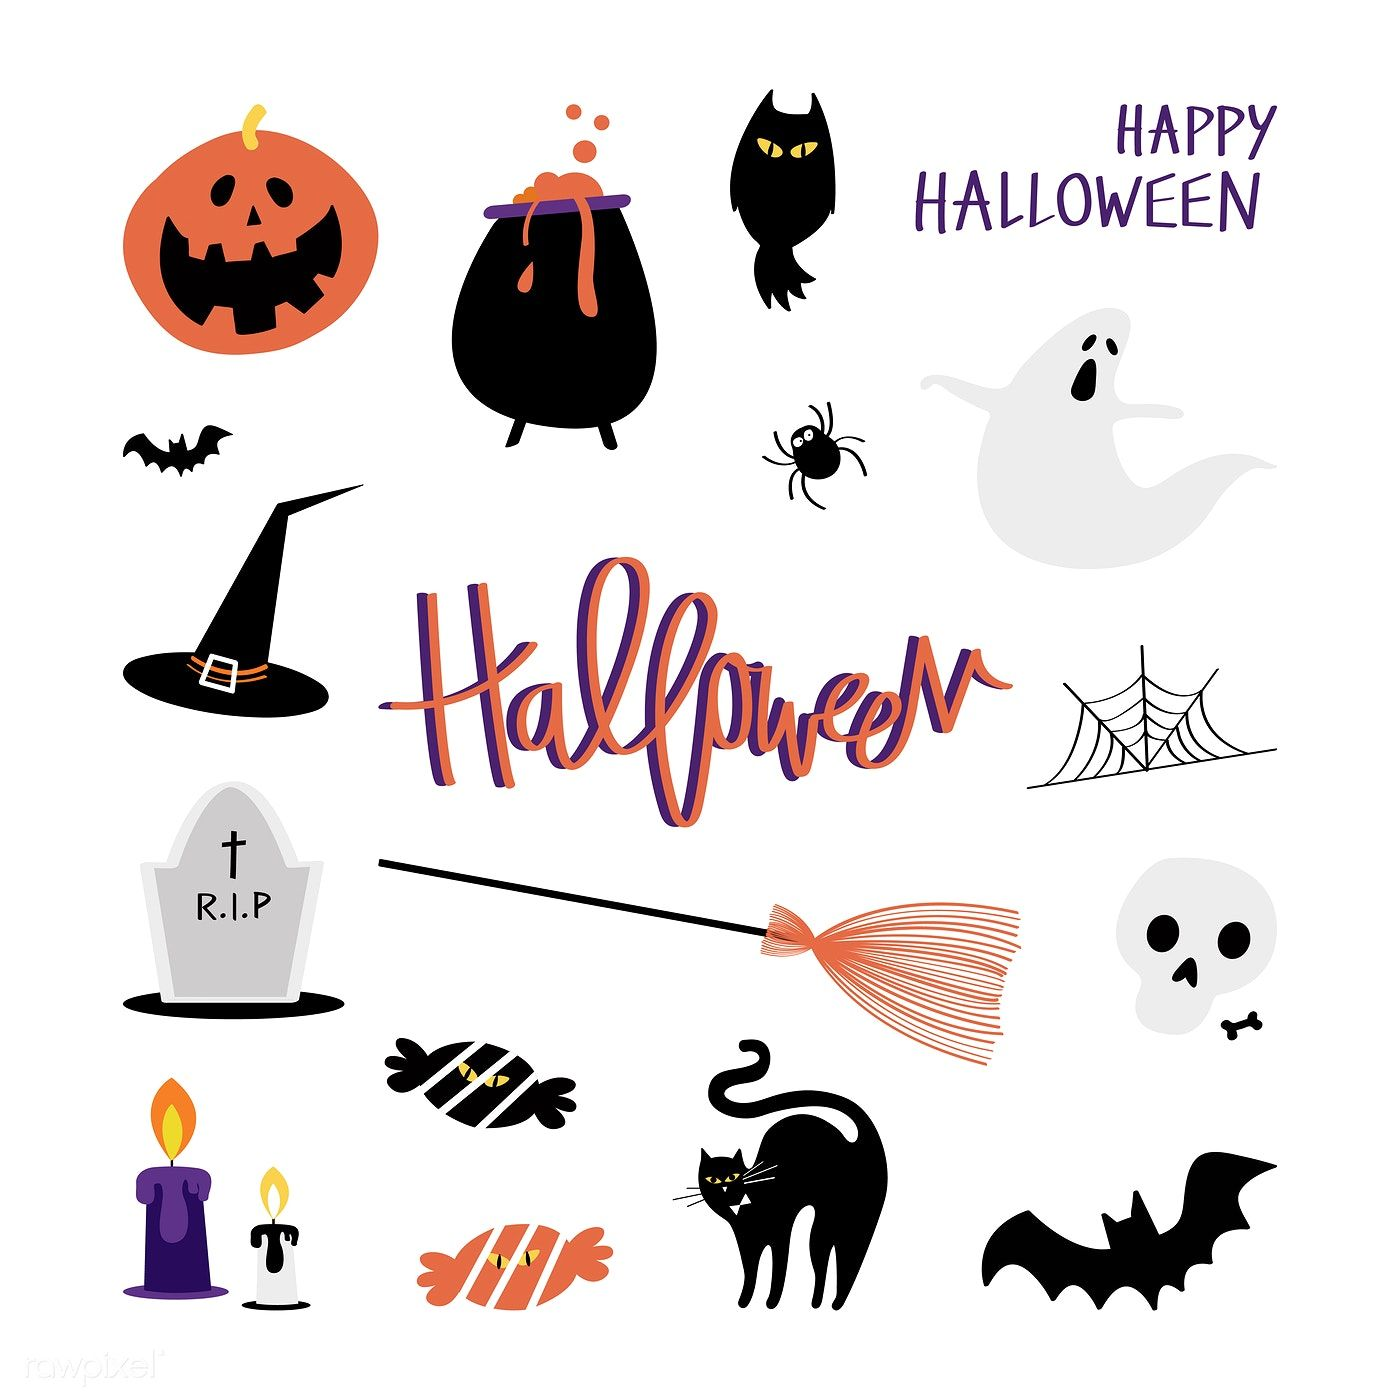 Cute Halloween day concept illustration free image by